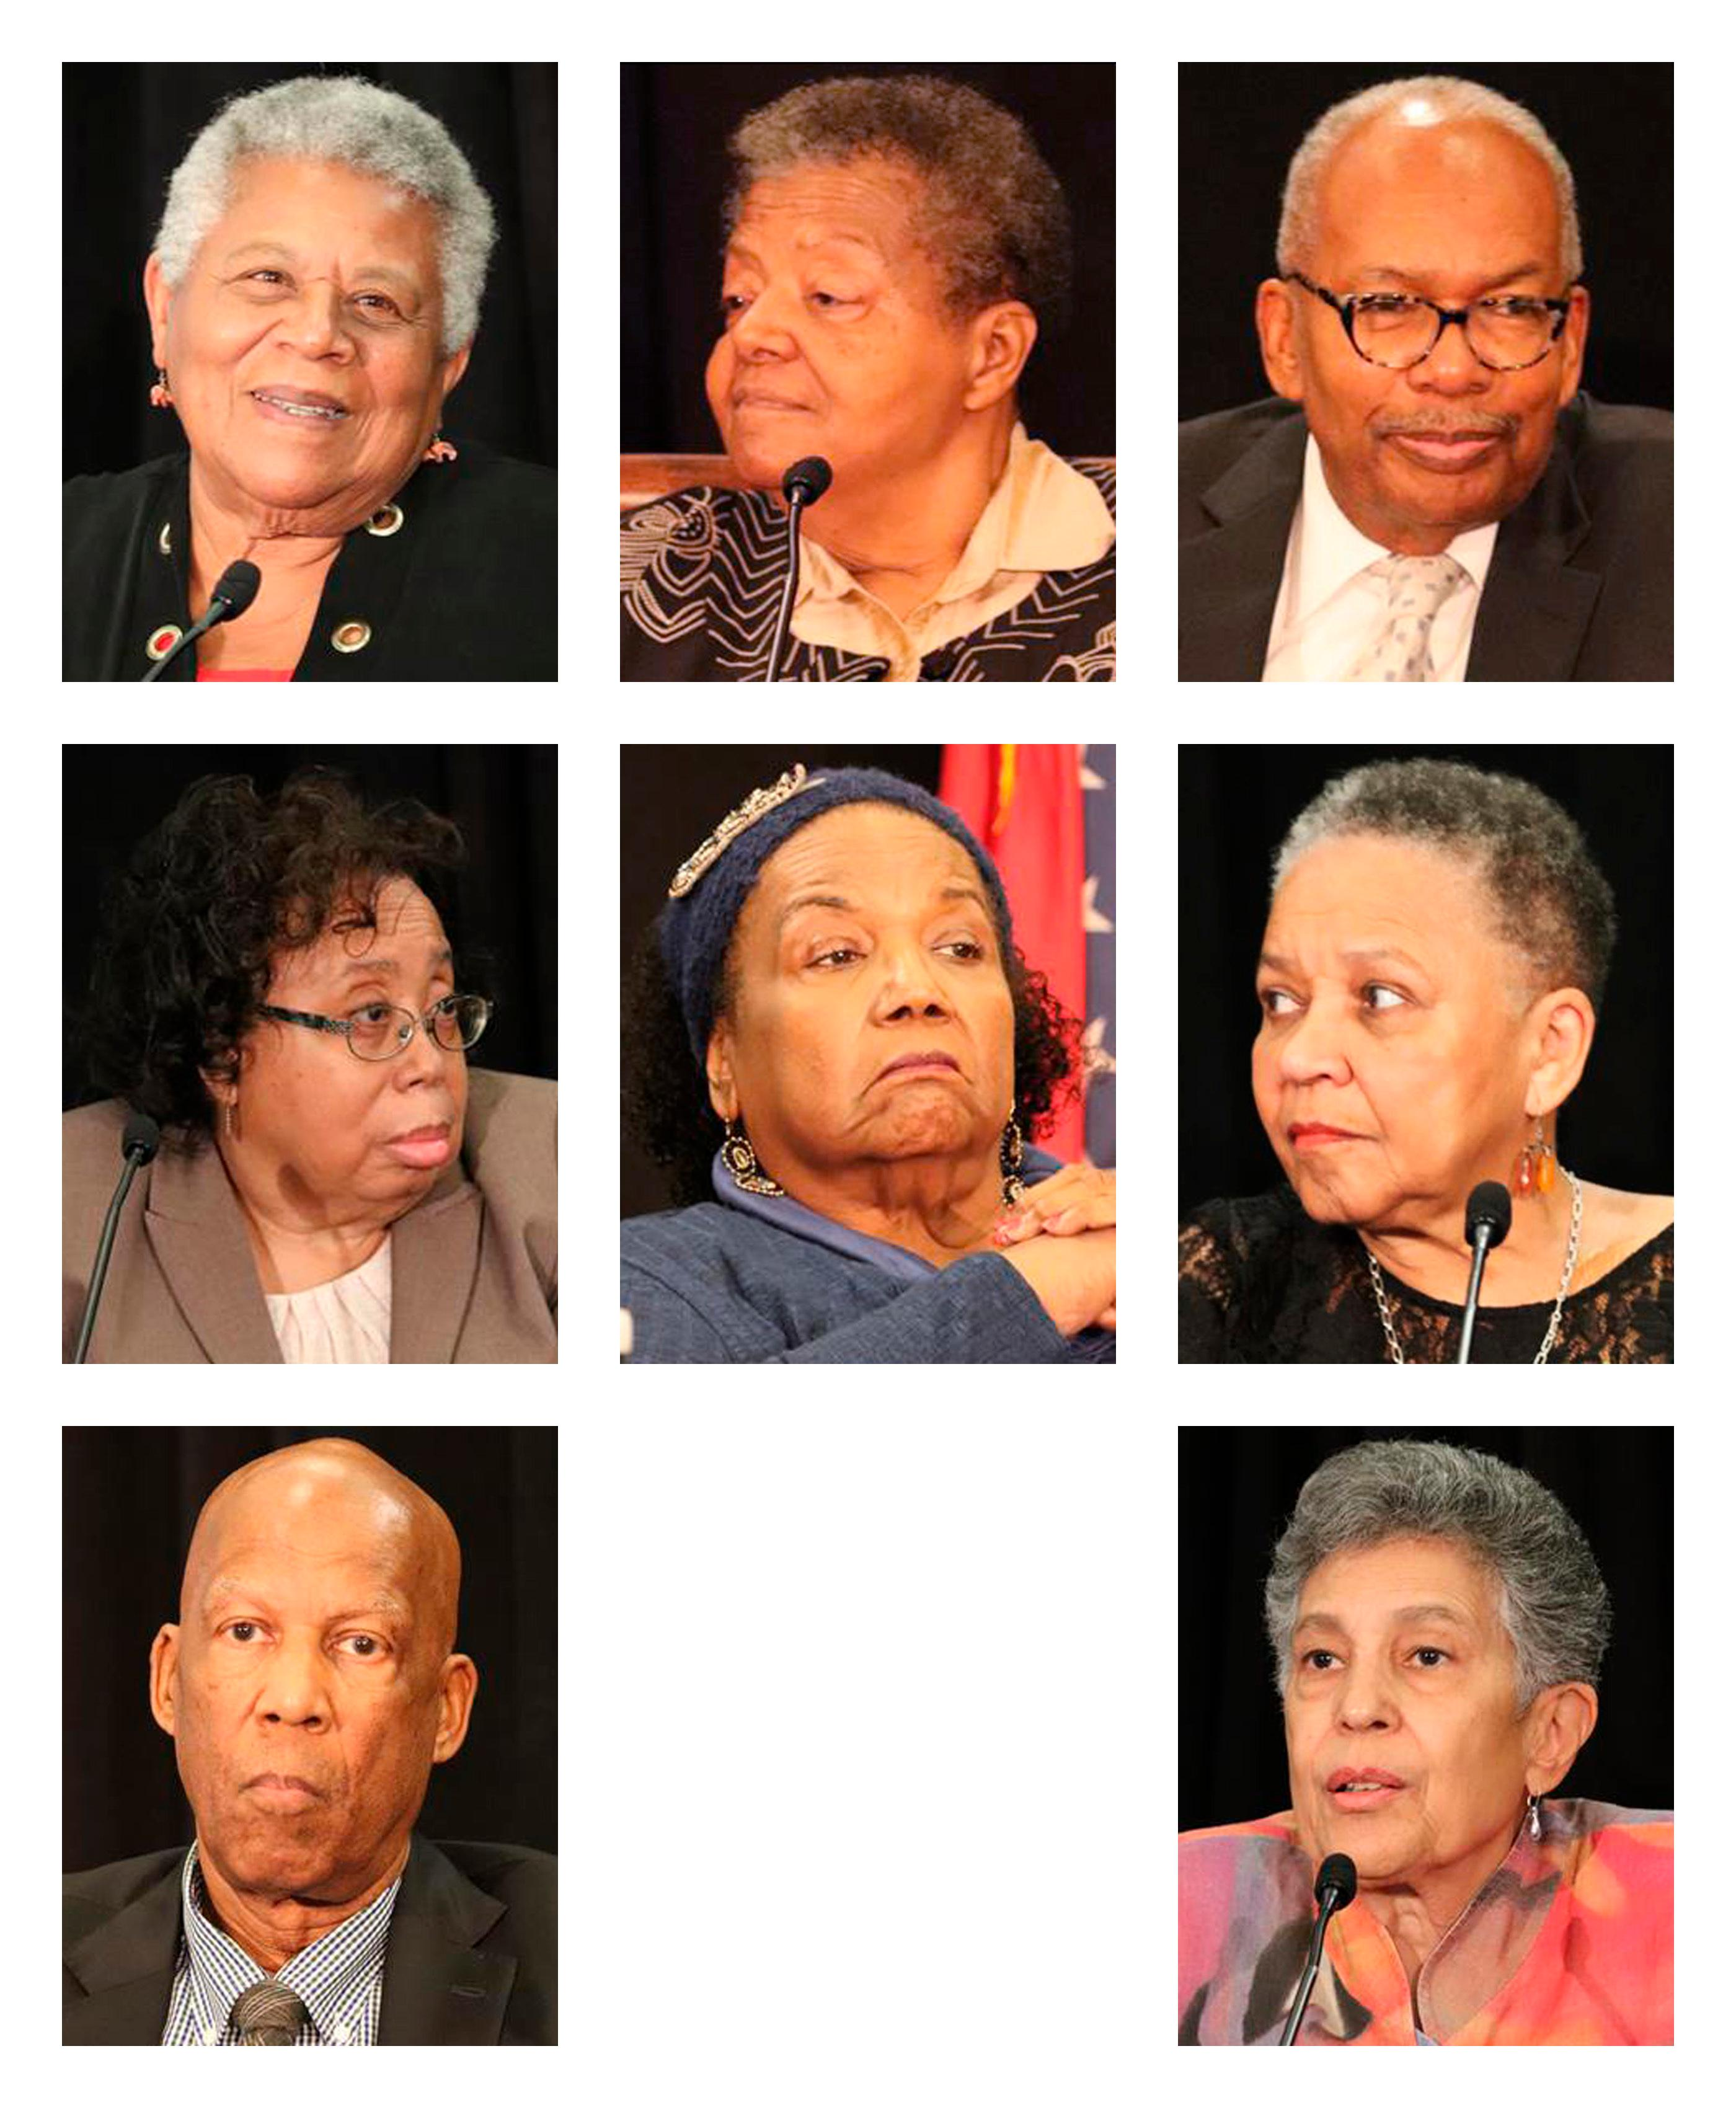 Shooting Reported At Arapahoe High School All Elizabeth: Little Rock Nine: Where Are They Now?